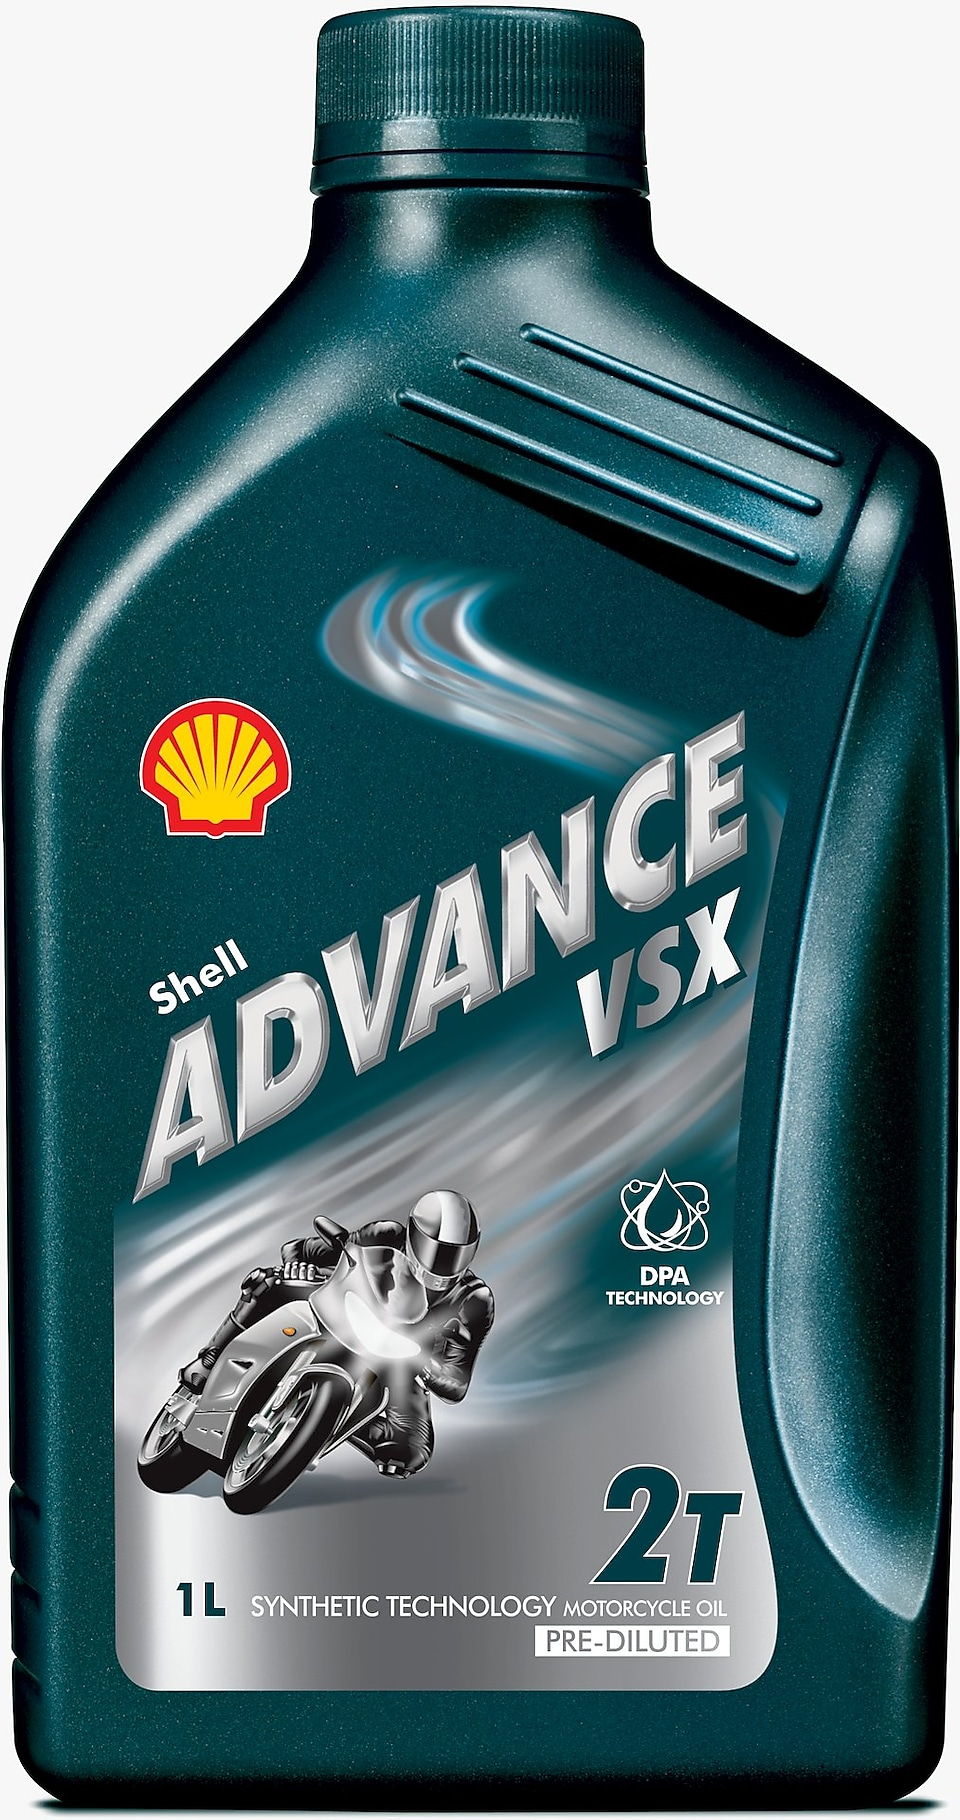 Packshot de Shell Advance VSX 2